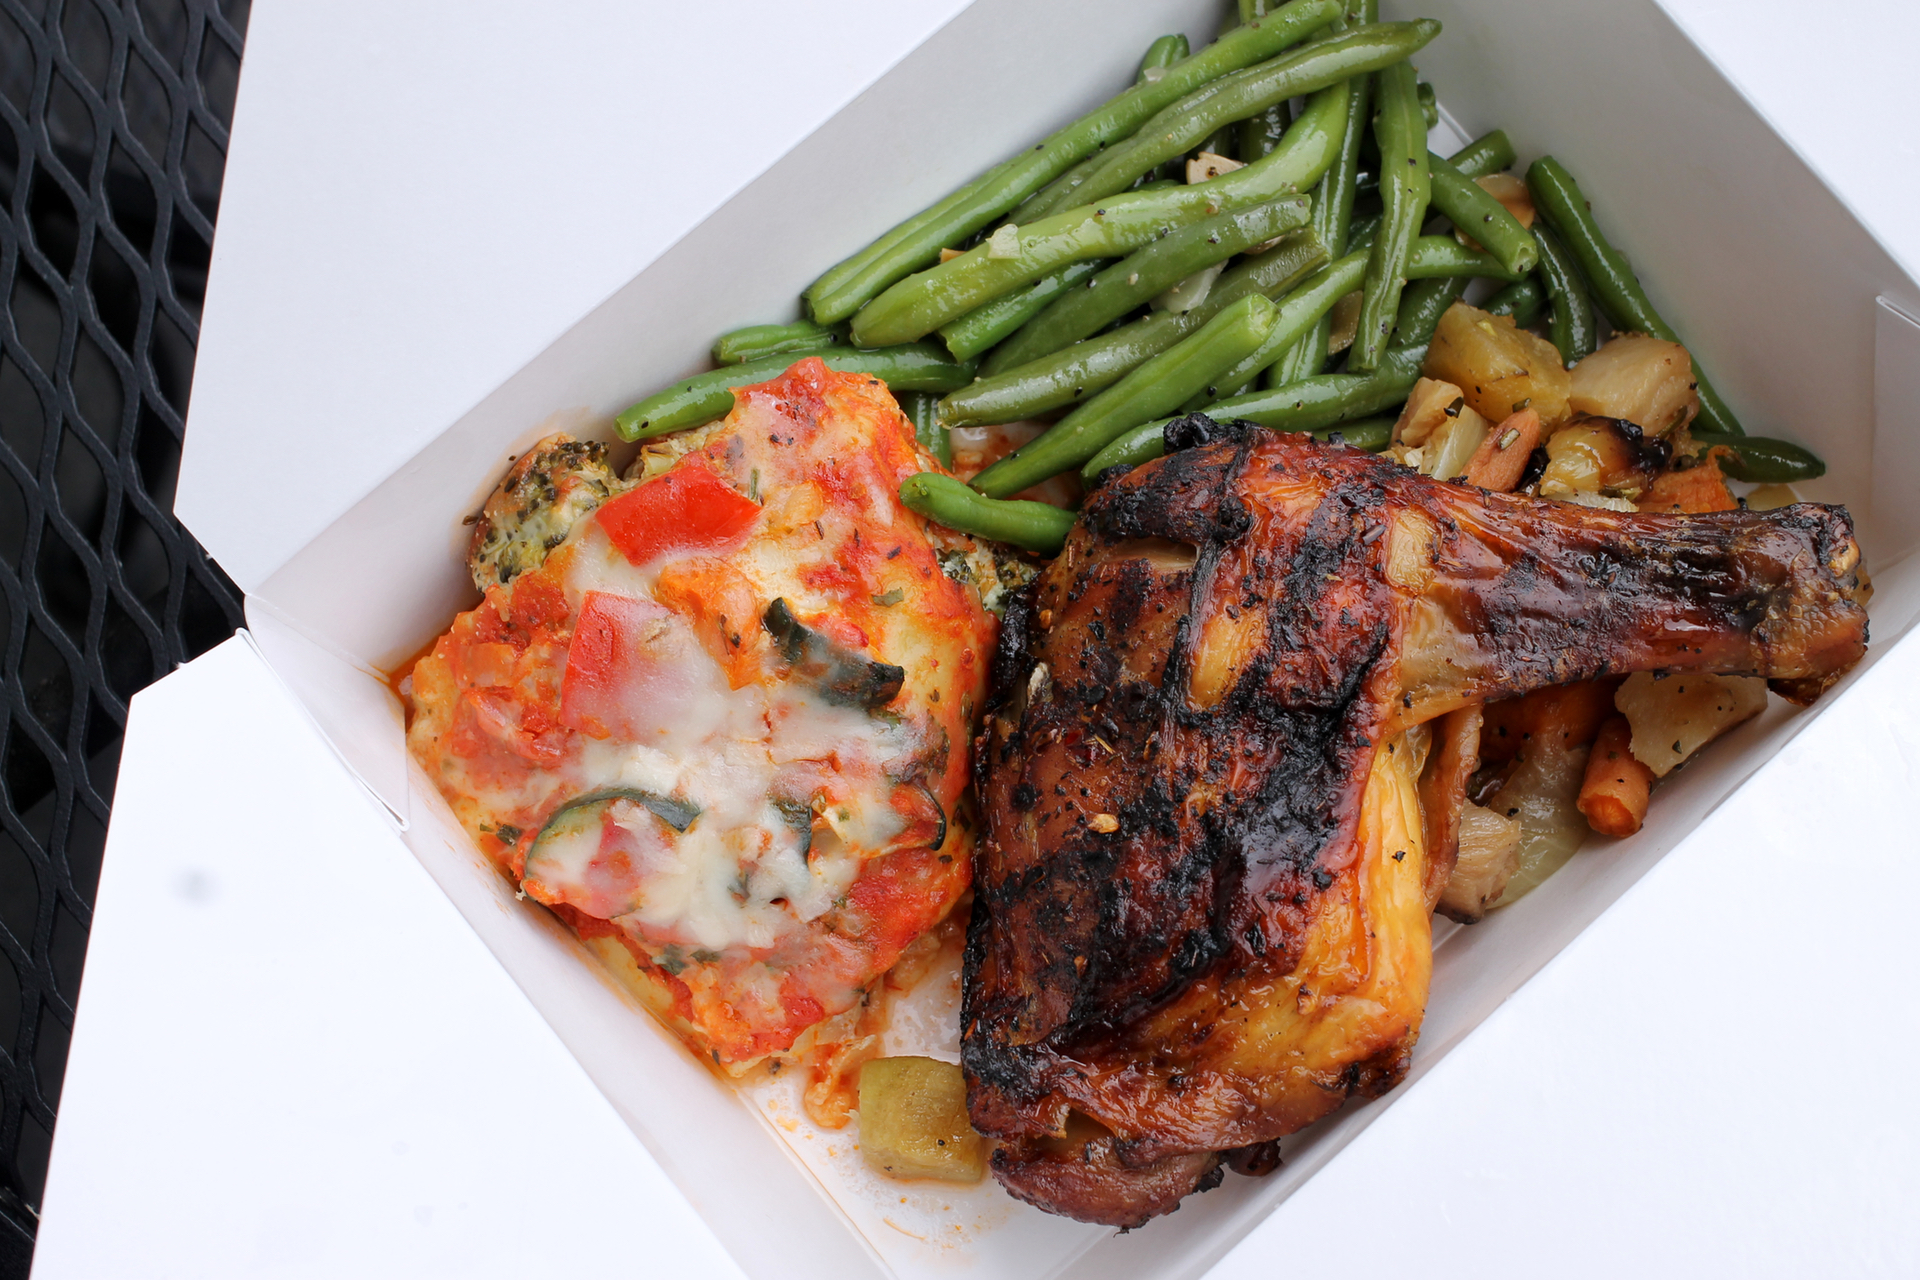 Vegetable lasagna, green beans almondine, roasted root vegetables, and jerk chicken from Piedmont Grocery.